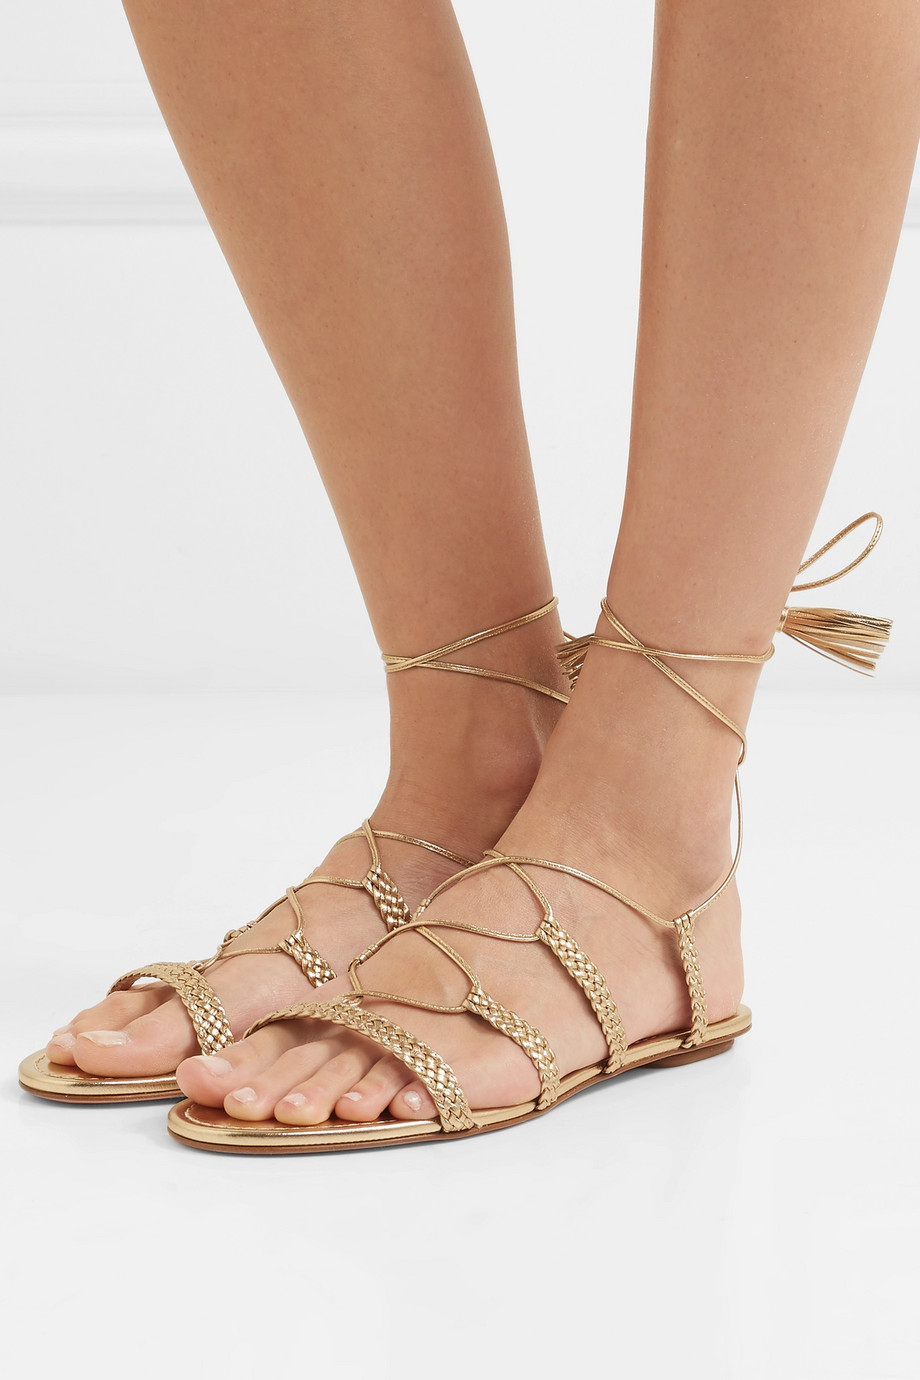 Aquazzura Stromboli braided metallic leather sandals